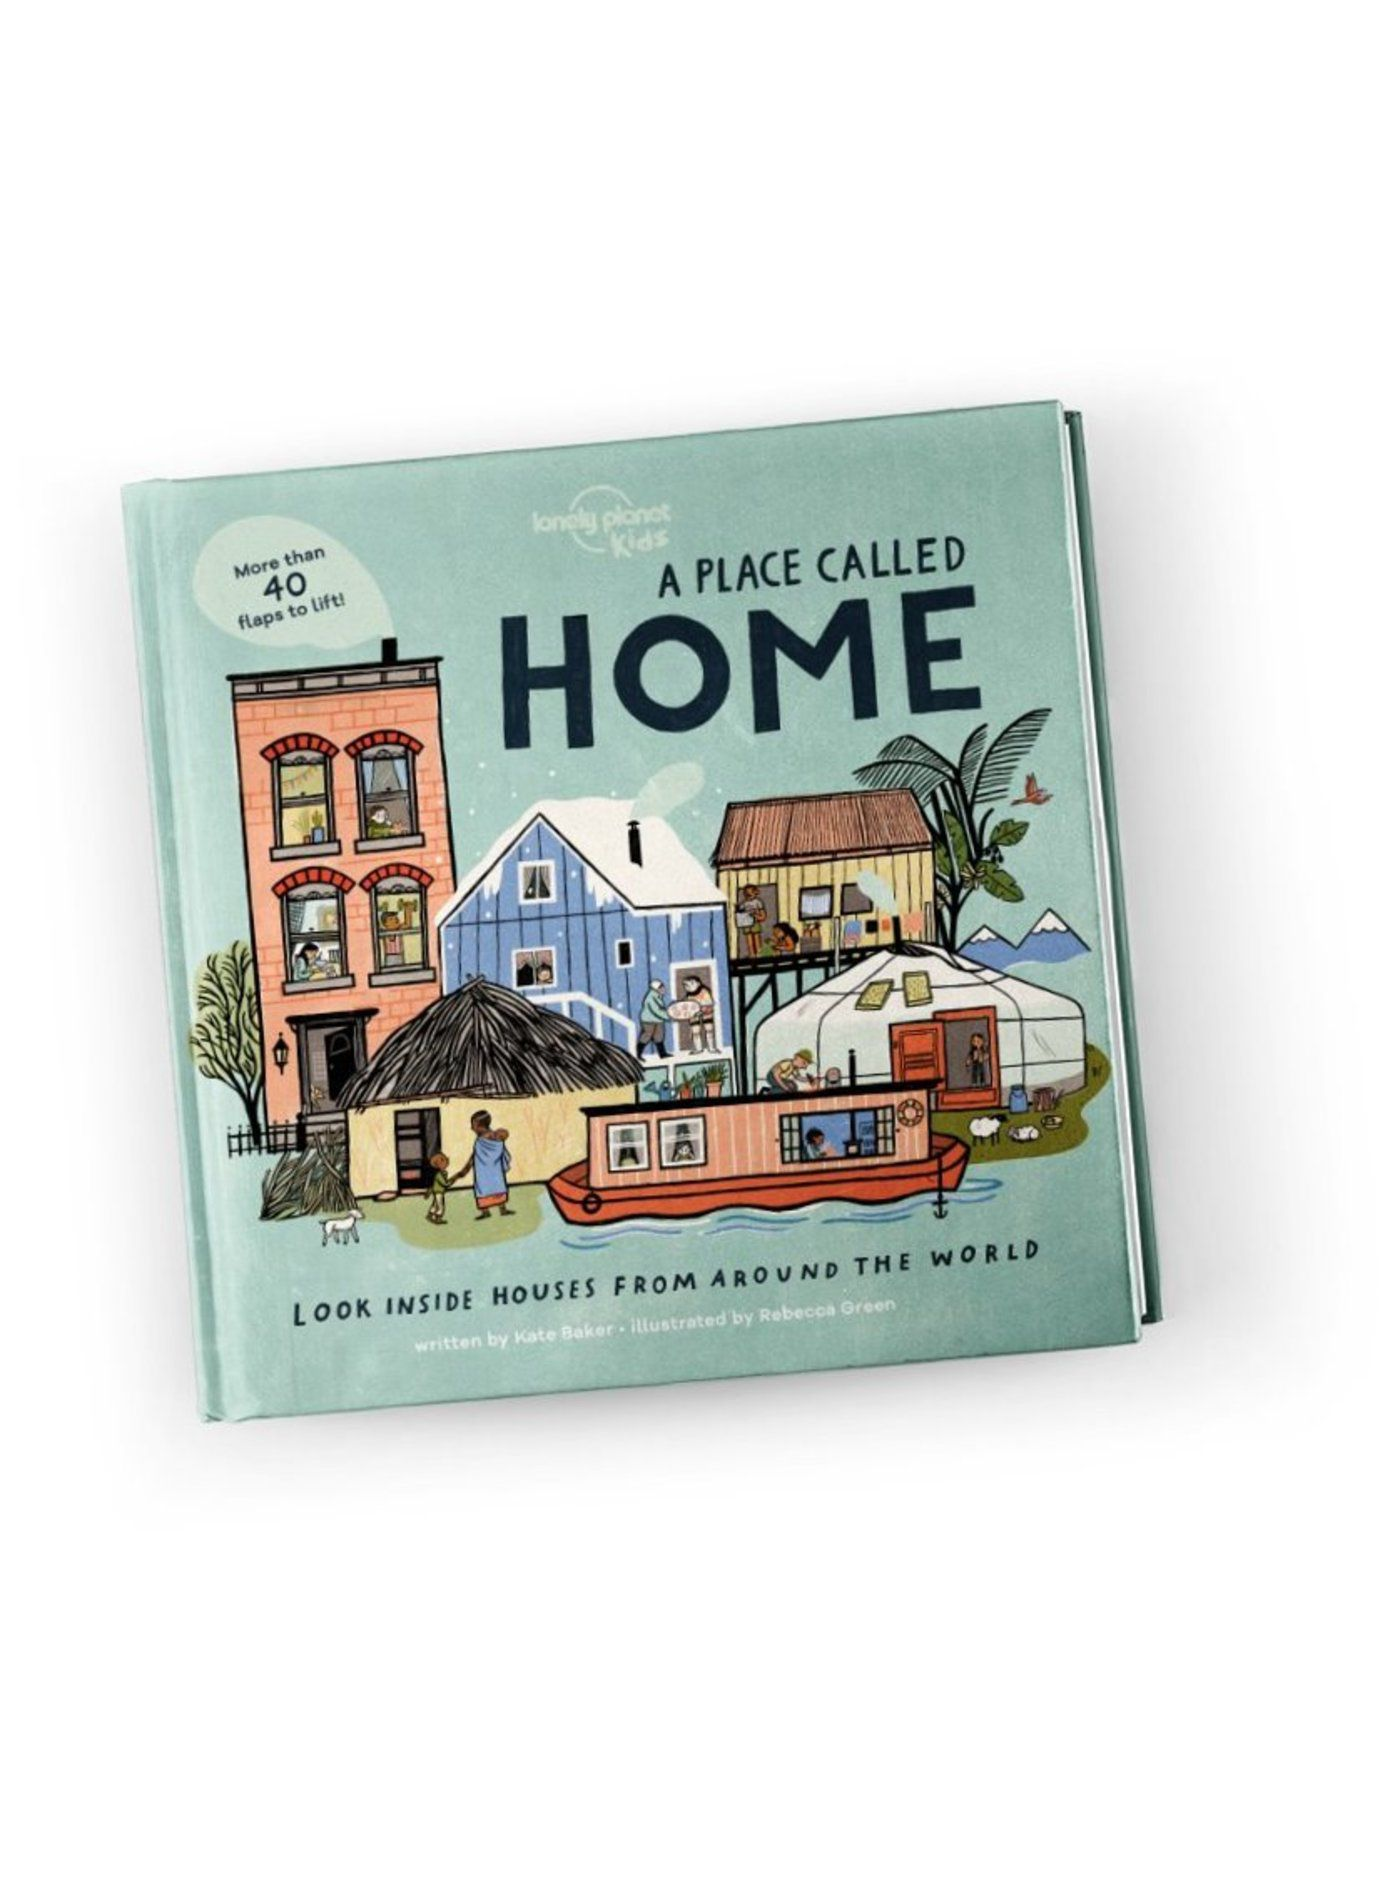 A Place Called Home (North & South America edition)